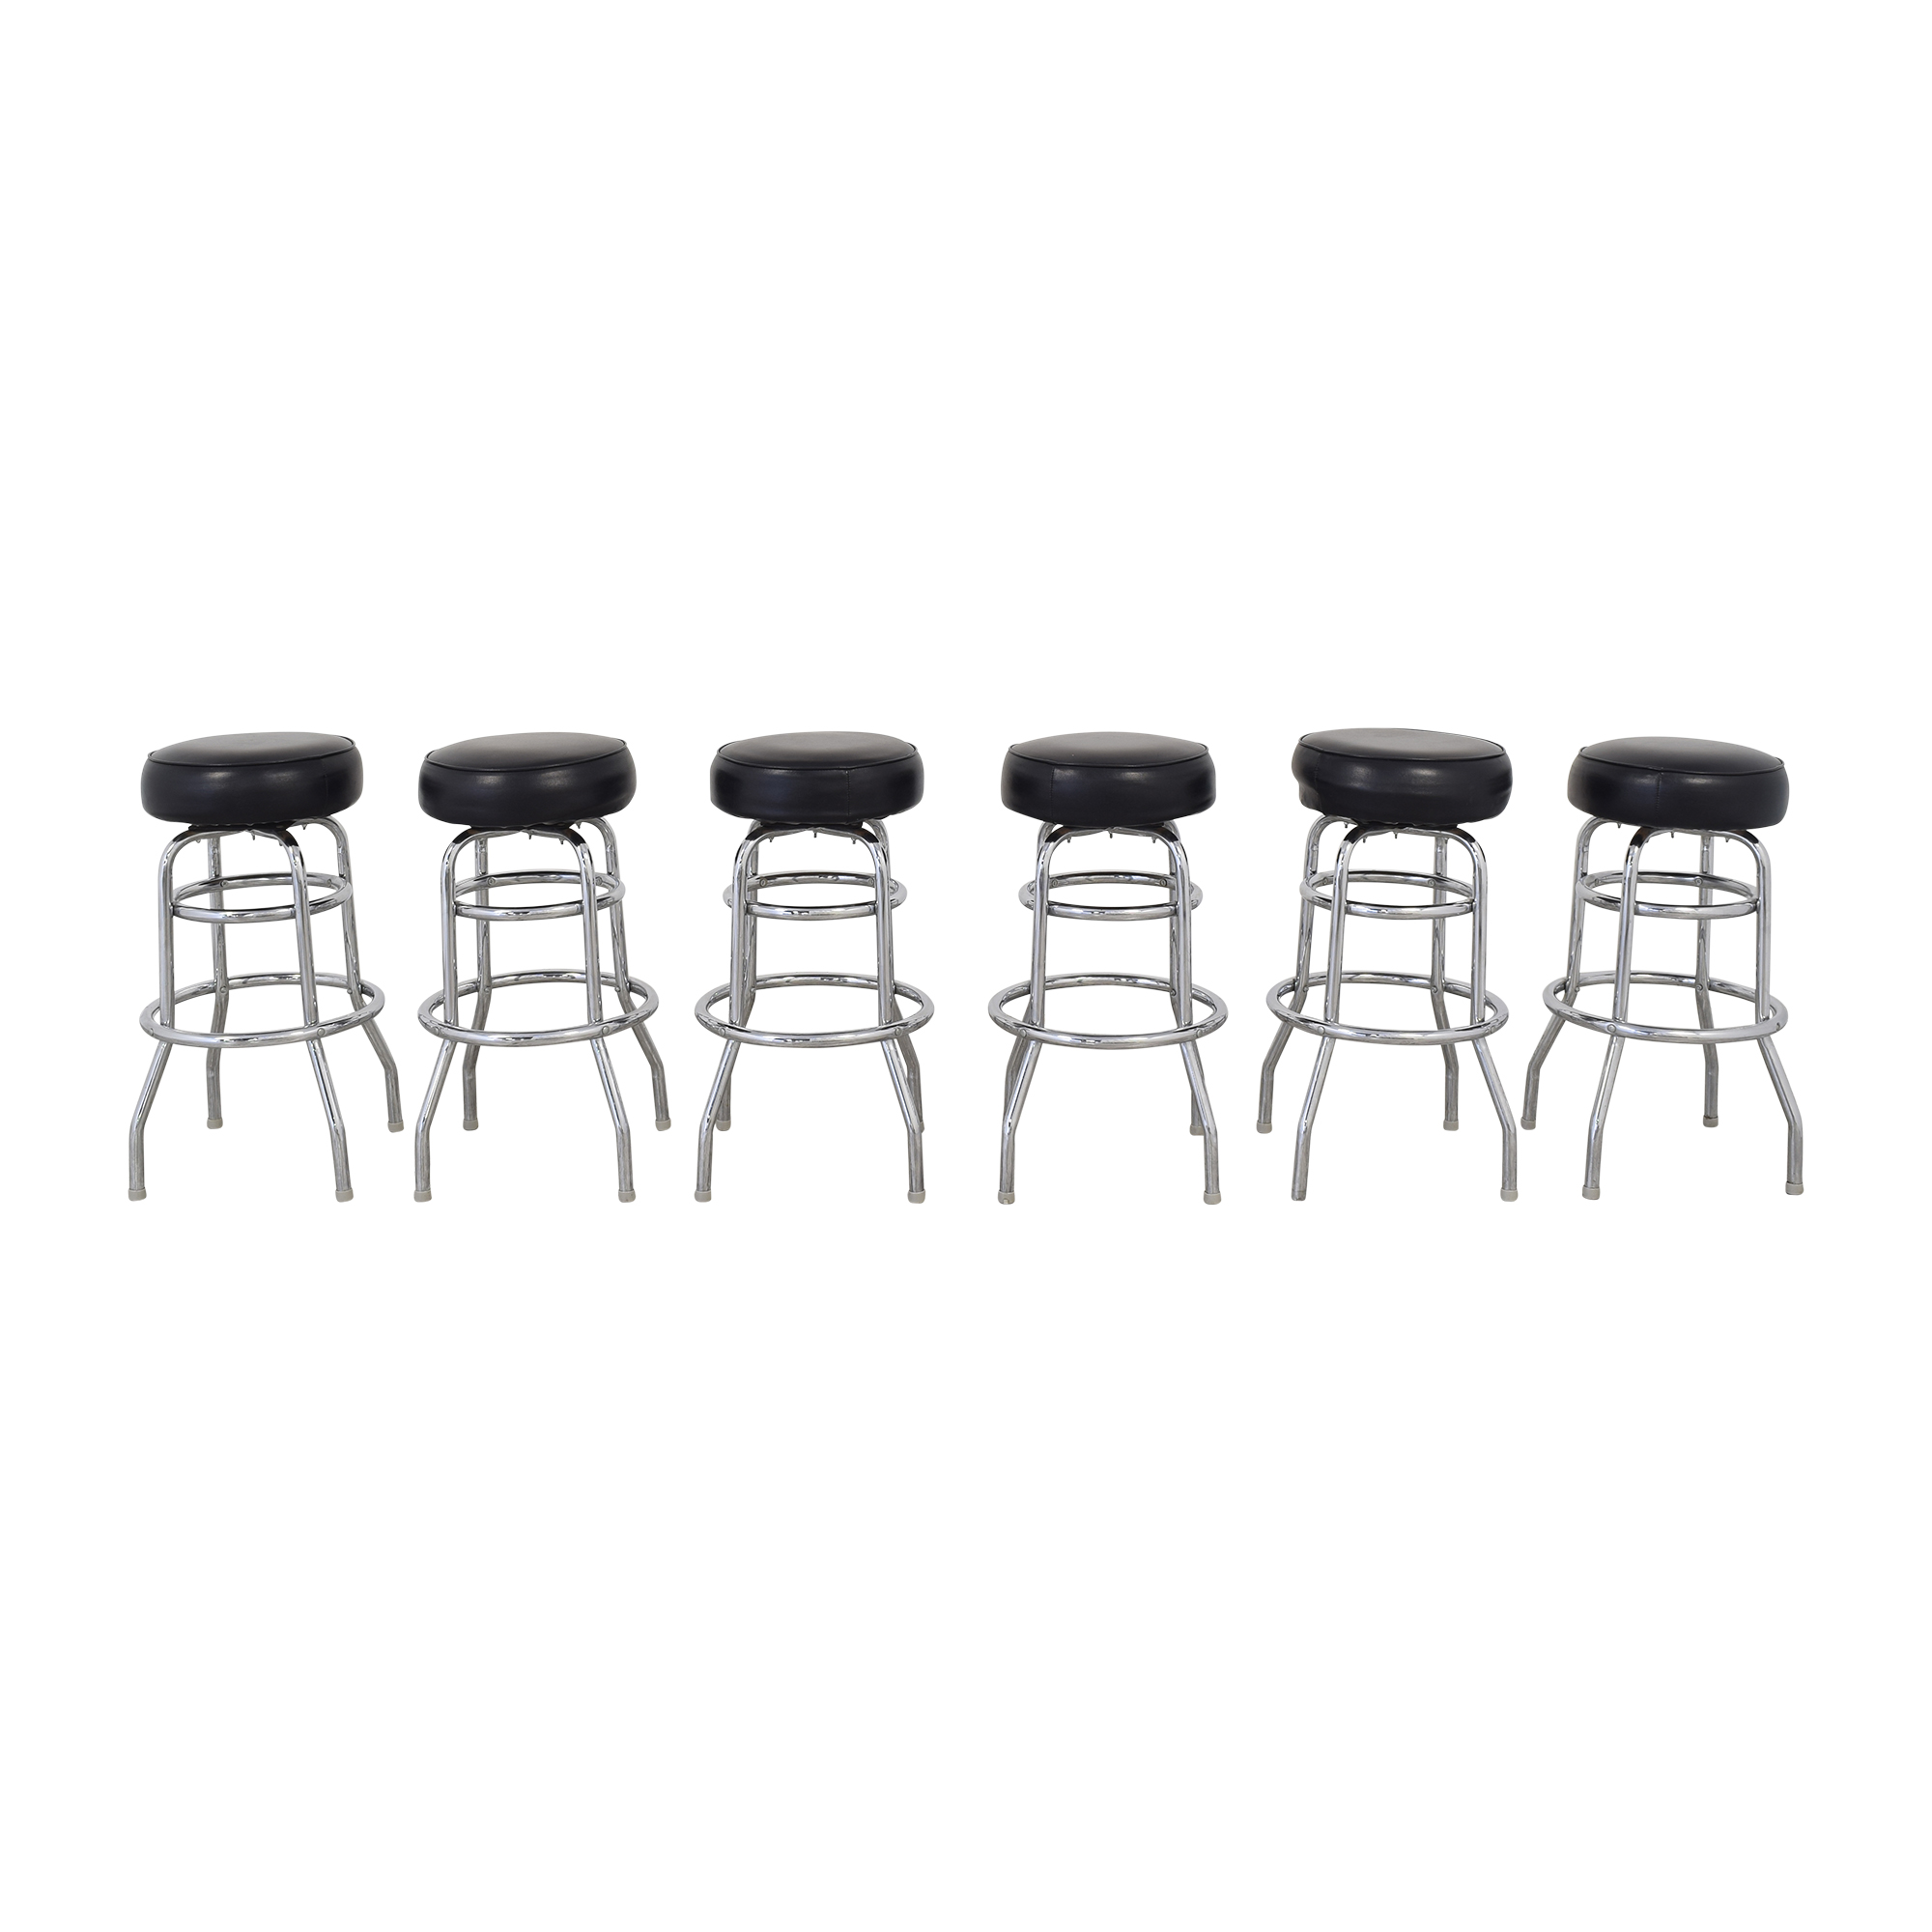 Chrome Diner Barstools